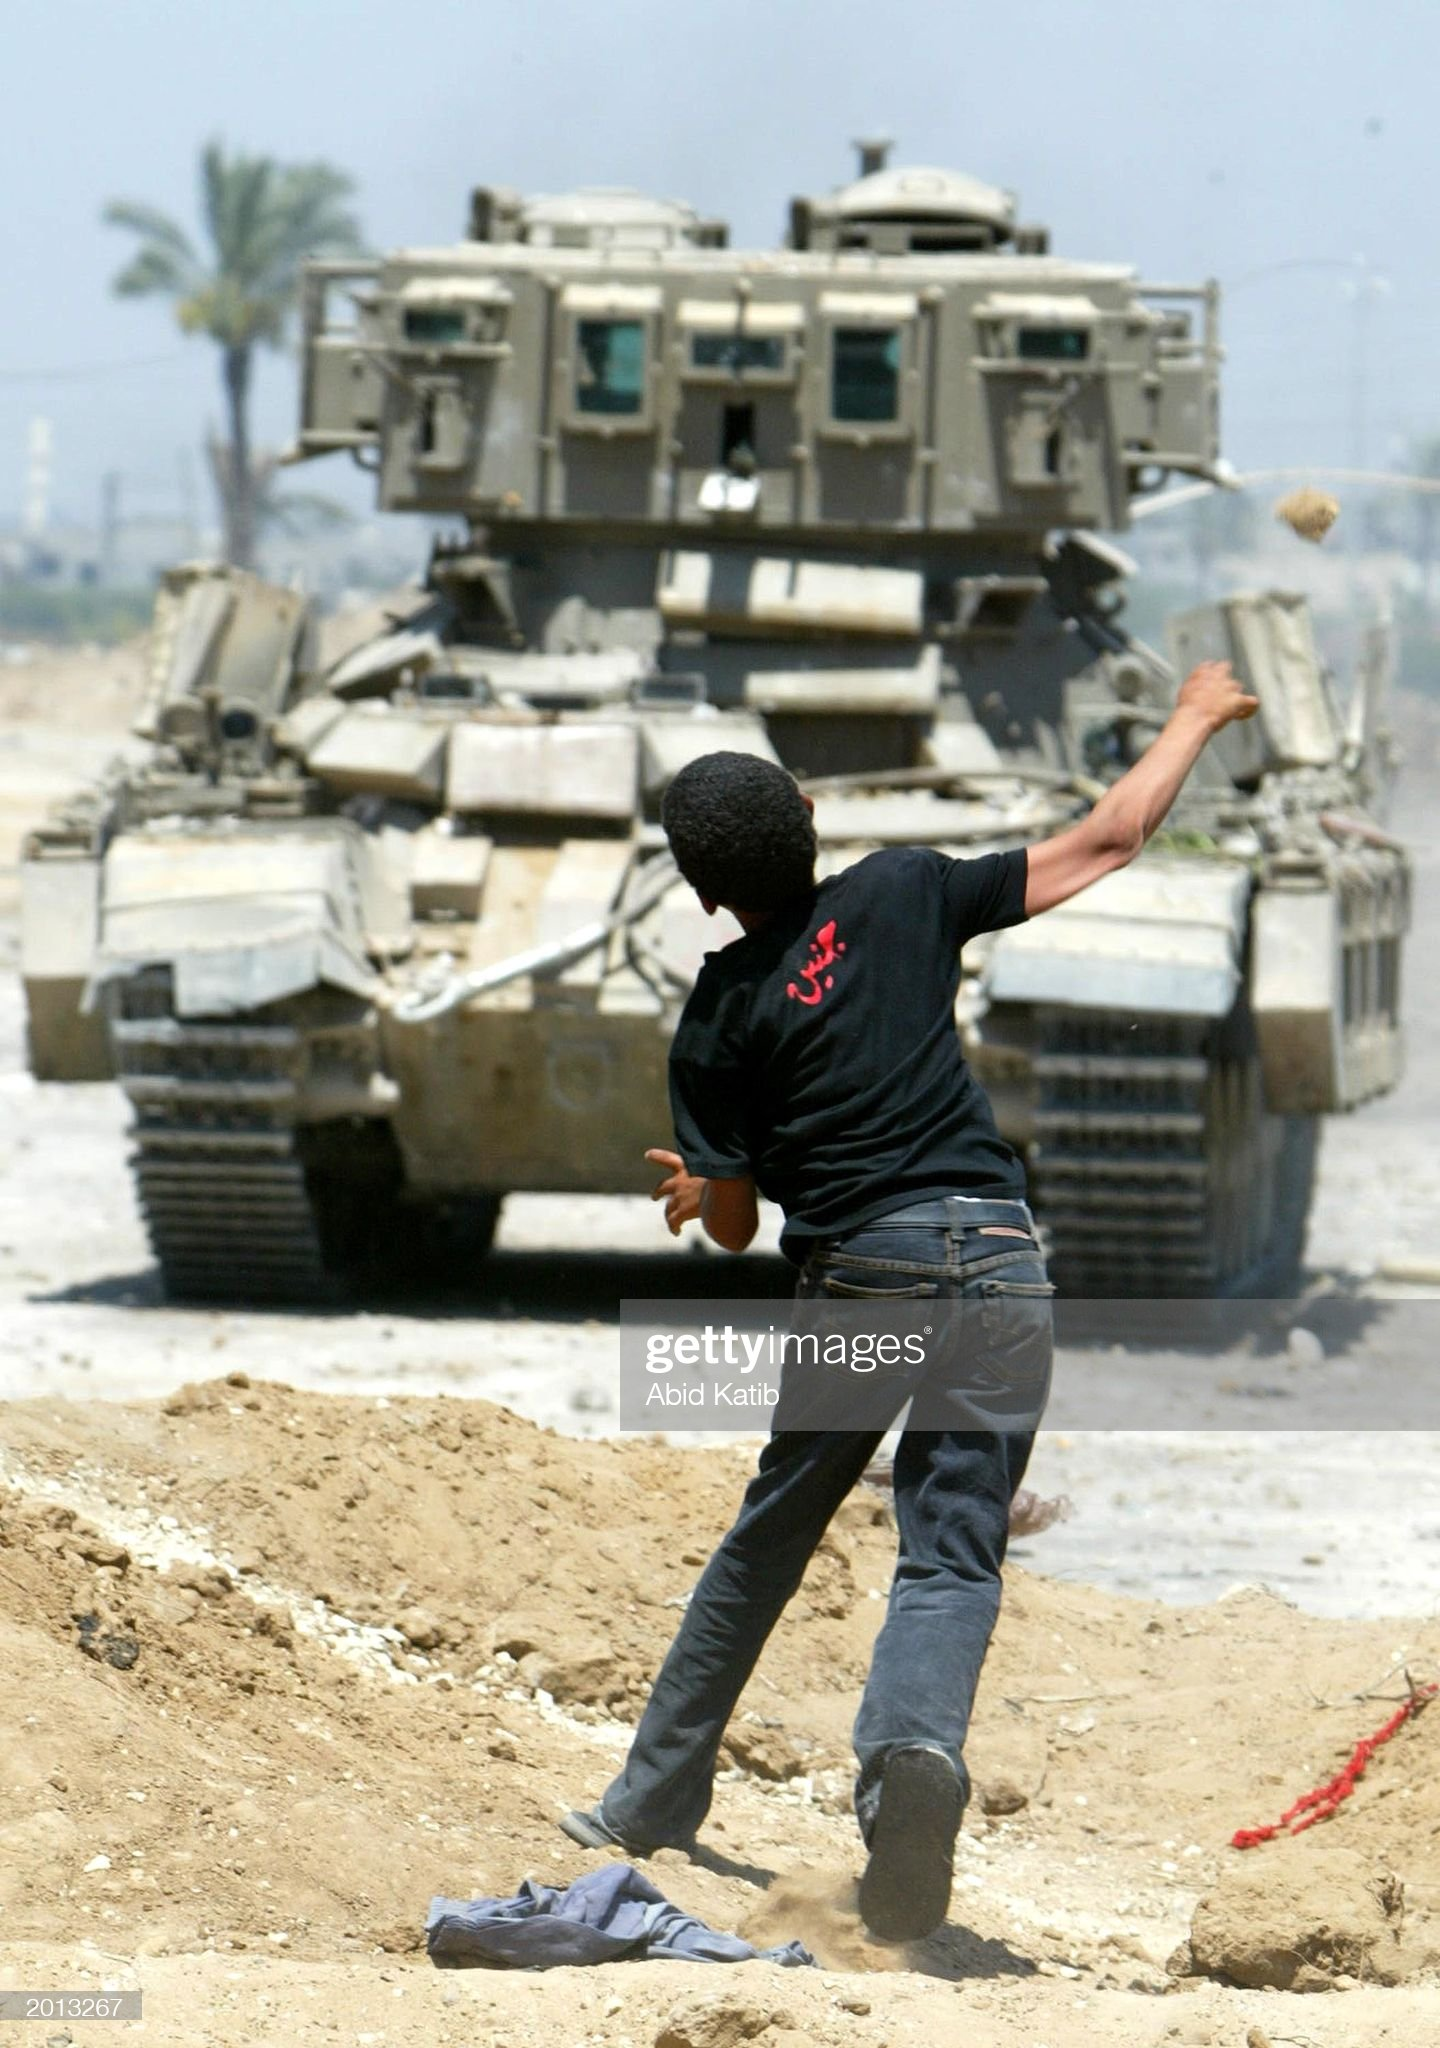 https://media.gettyimages.com/photos/palestinian-boy-throws-a-stone-at-an-israeli-tank-during-a-clash-may-picture-id2013267?s=2048x2048